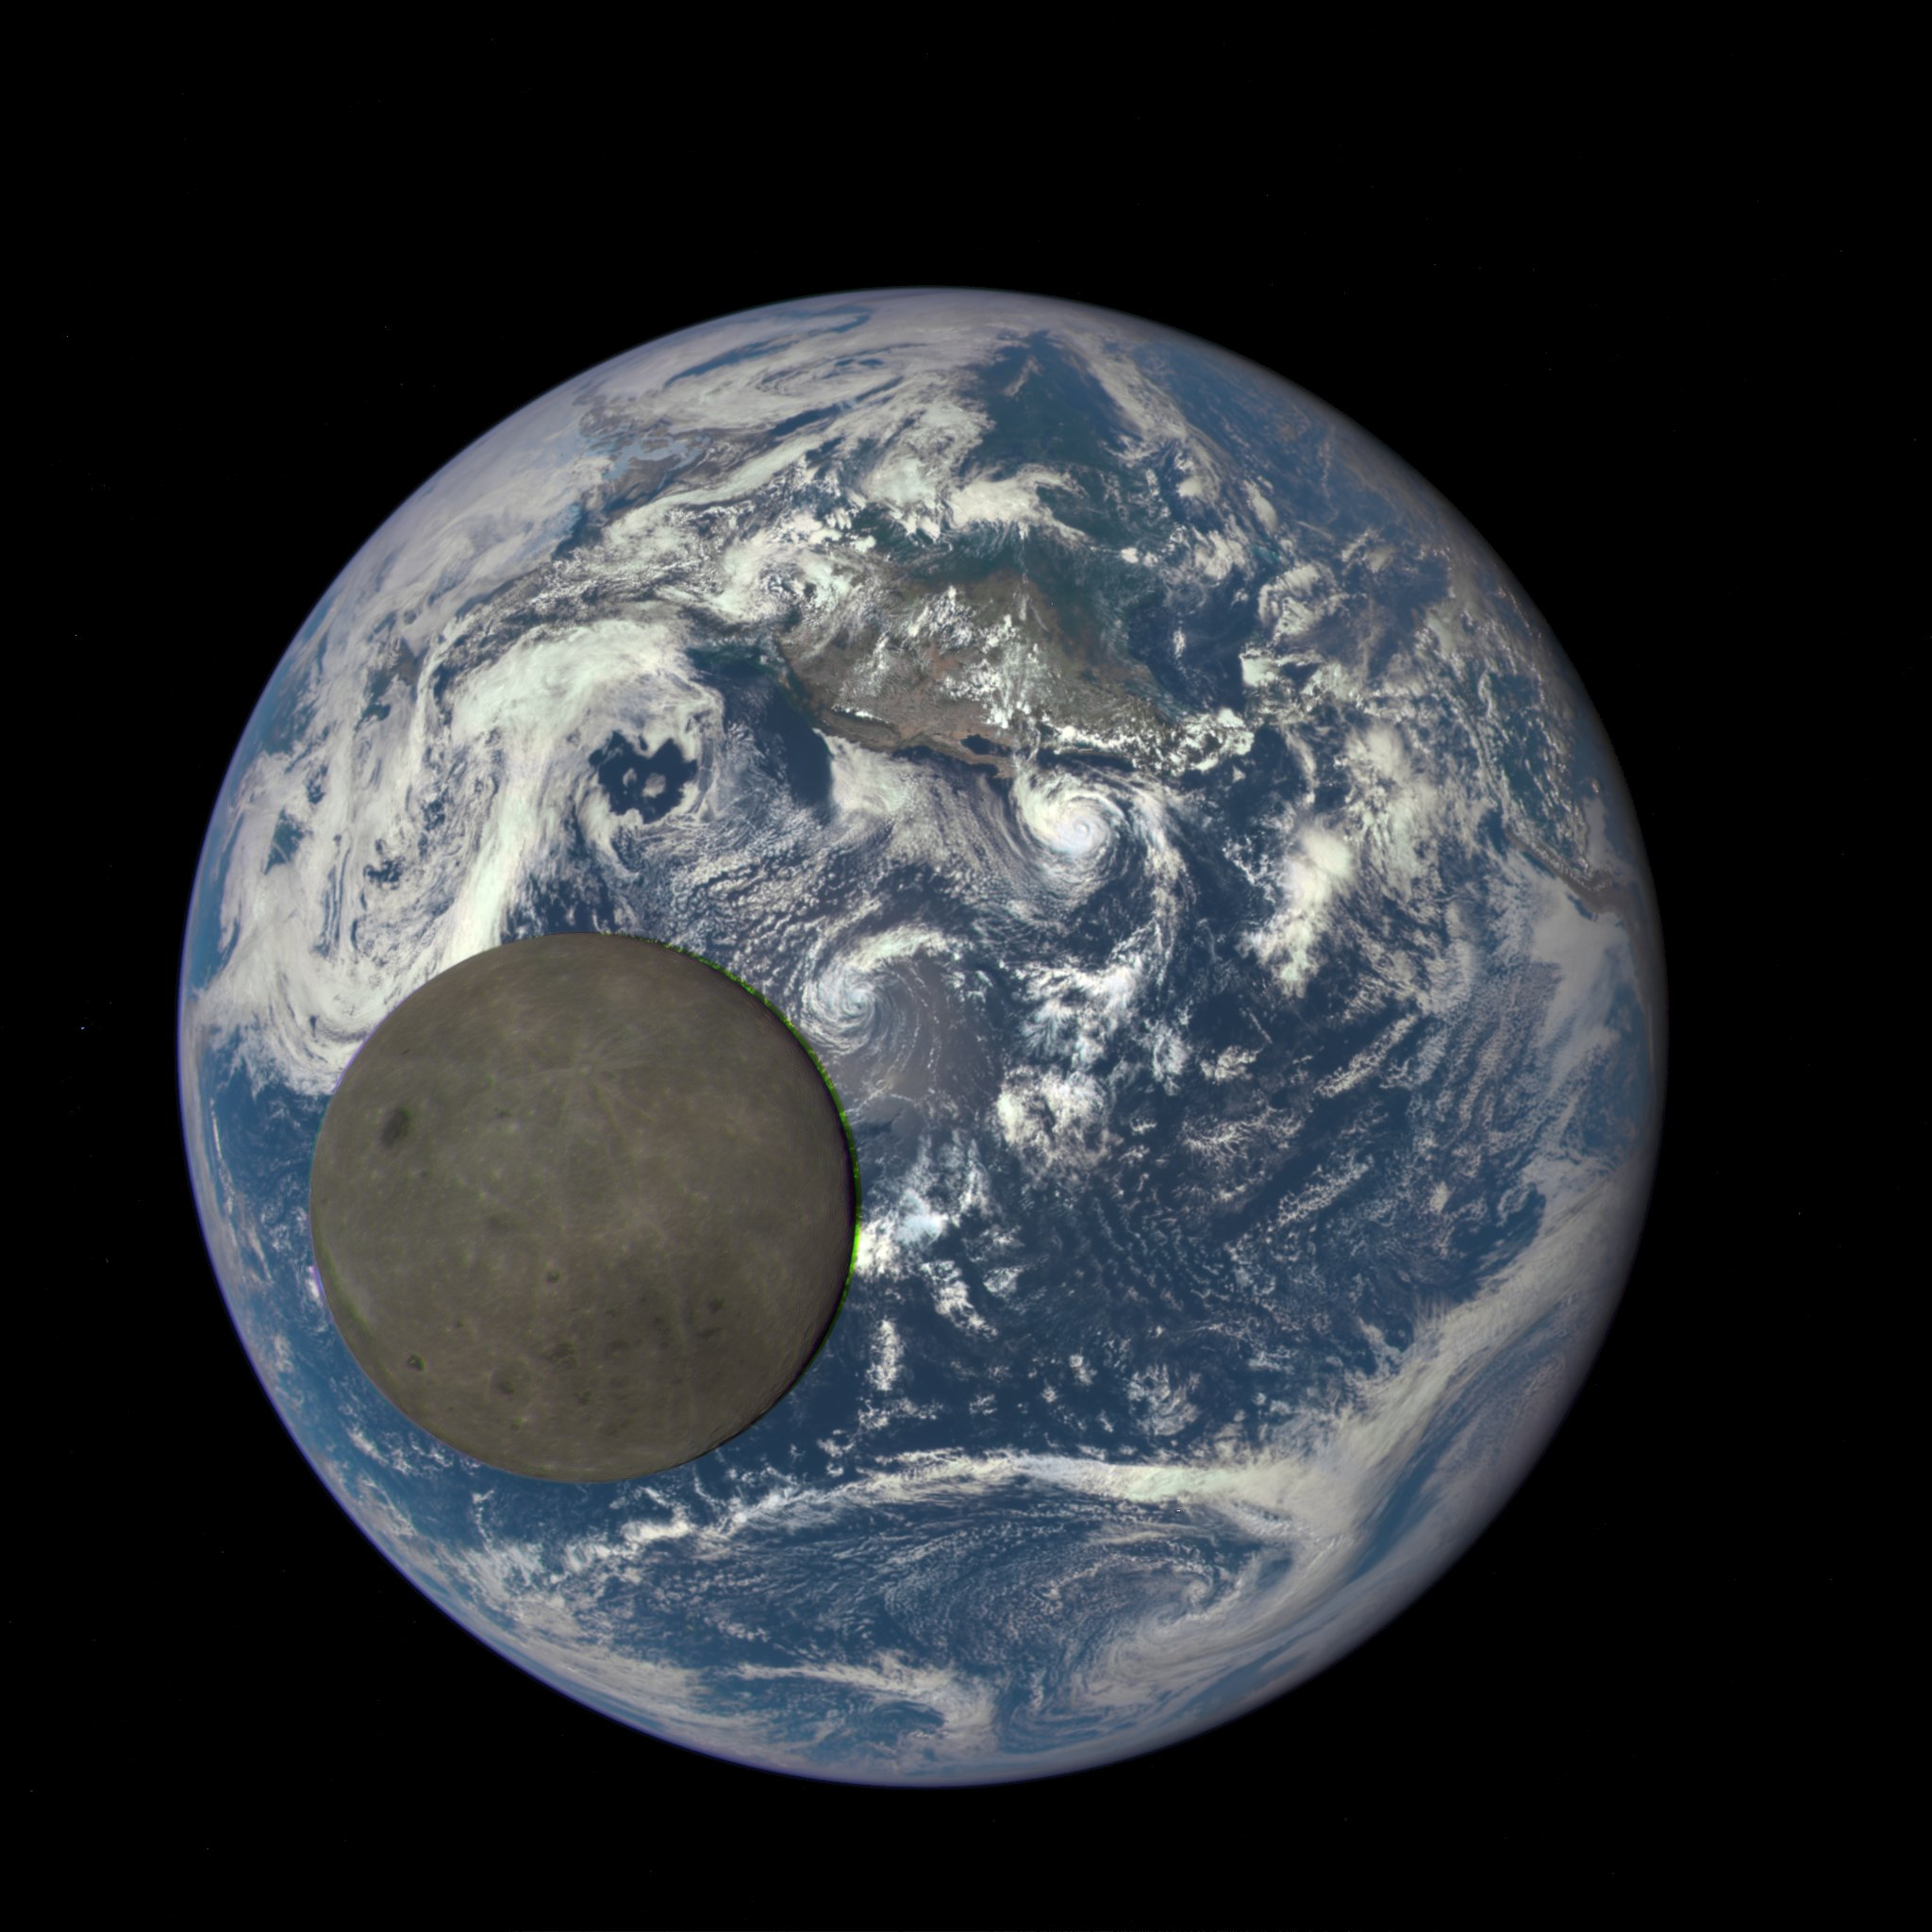 Study suggests earths water was present before impact that caused this image shows the far side of the moon illuminated by the sun credit nasa stopboris Gallery